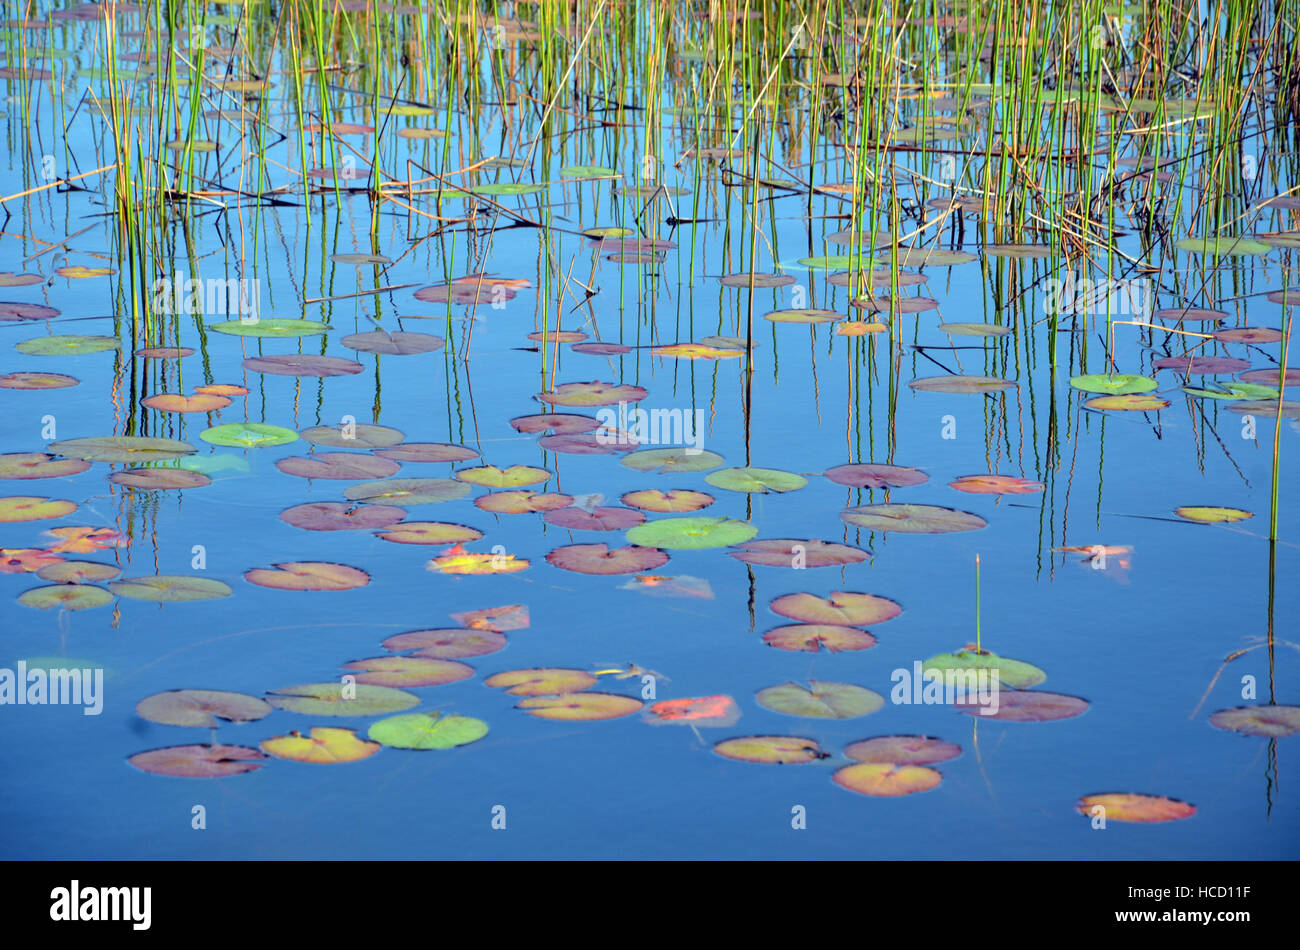 Reeds, reflections and colorful Waterlily pads in a blue pond - Stock Image